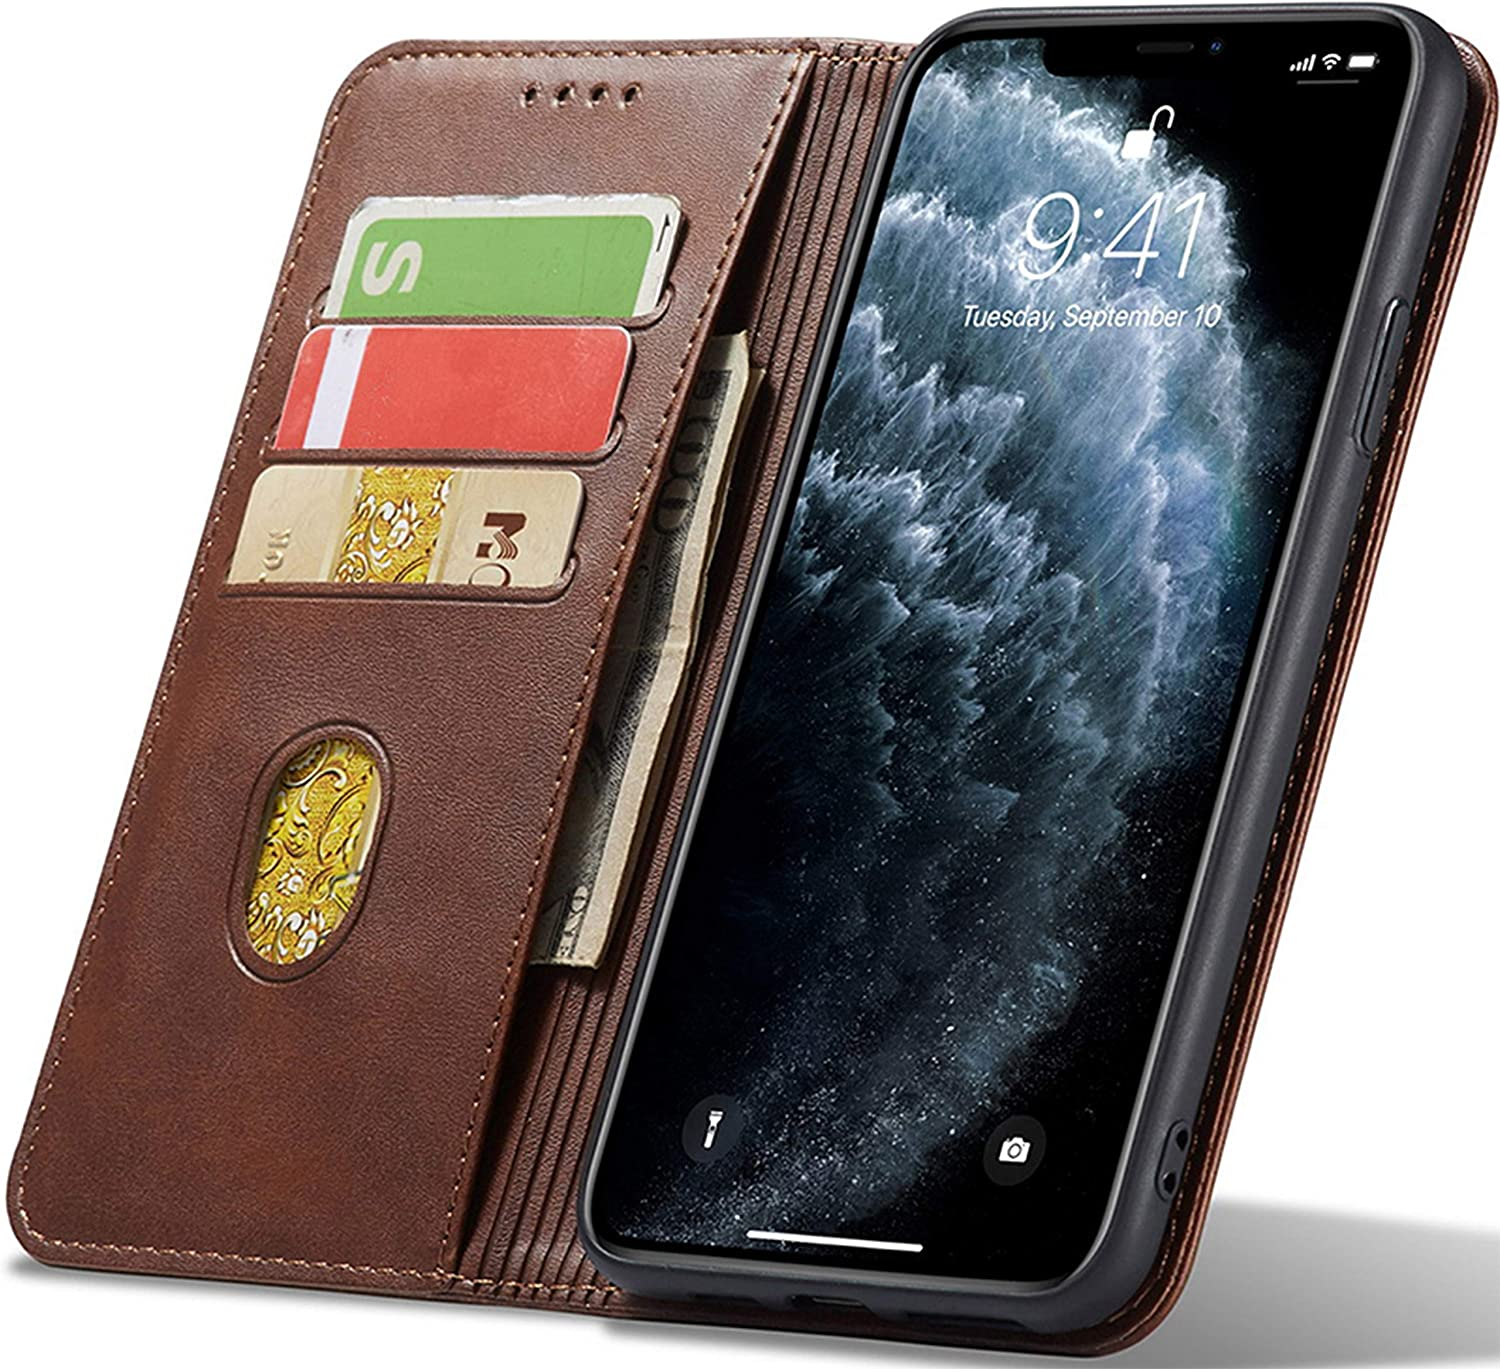 PhoneHeaven Leather Series Mobile Phone Case for iPhone 7 Plus & 8 Plus (Protective & Durable) - Brown